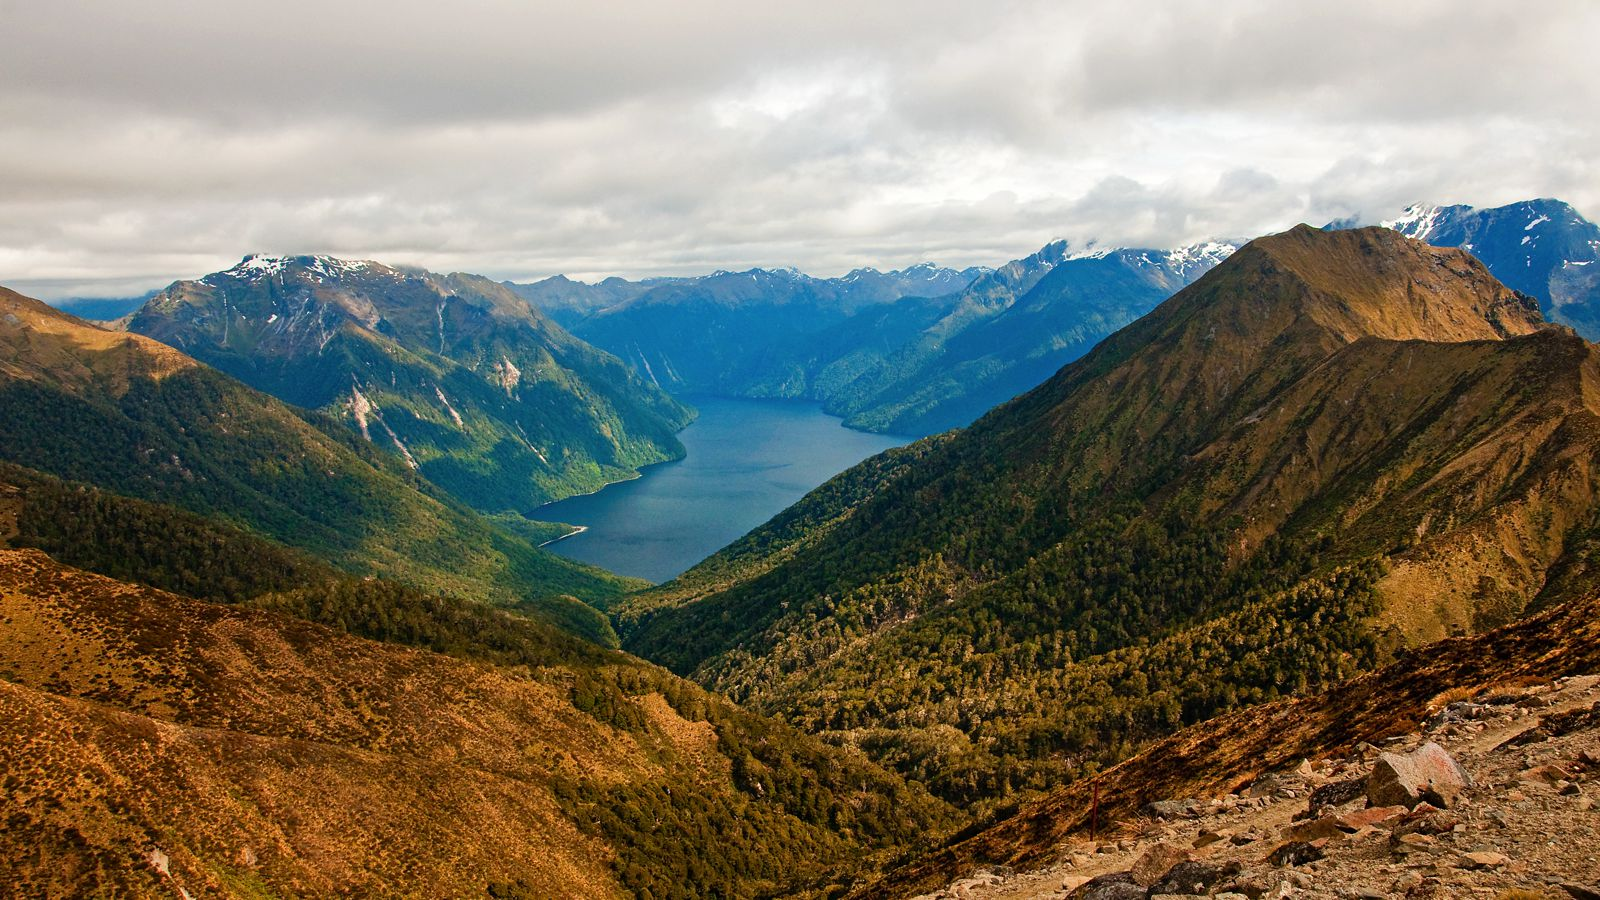 10 Absolutely Beautiful Hiking Trails You Have To Do In New Zealand (9)